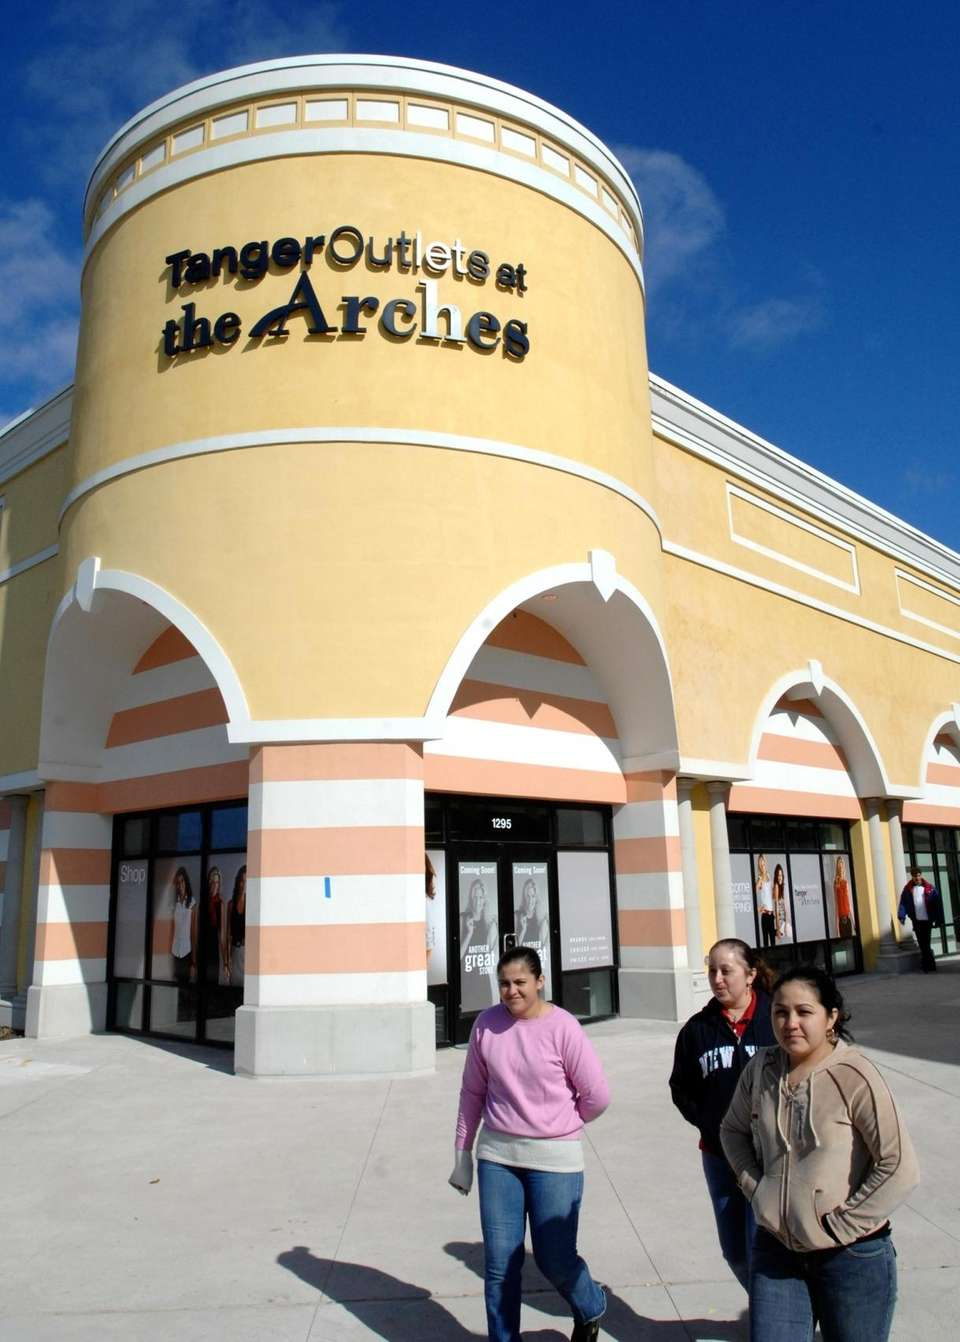 Tanger Outlets at Deer Park; 152 The Arches